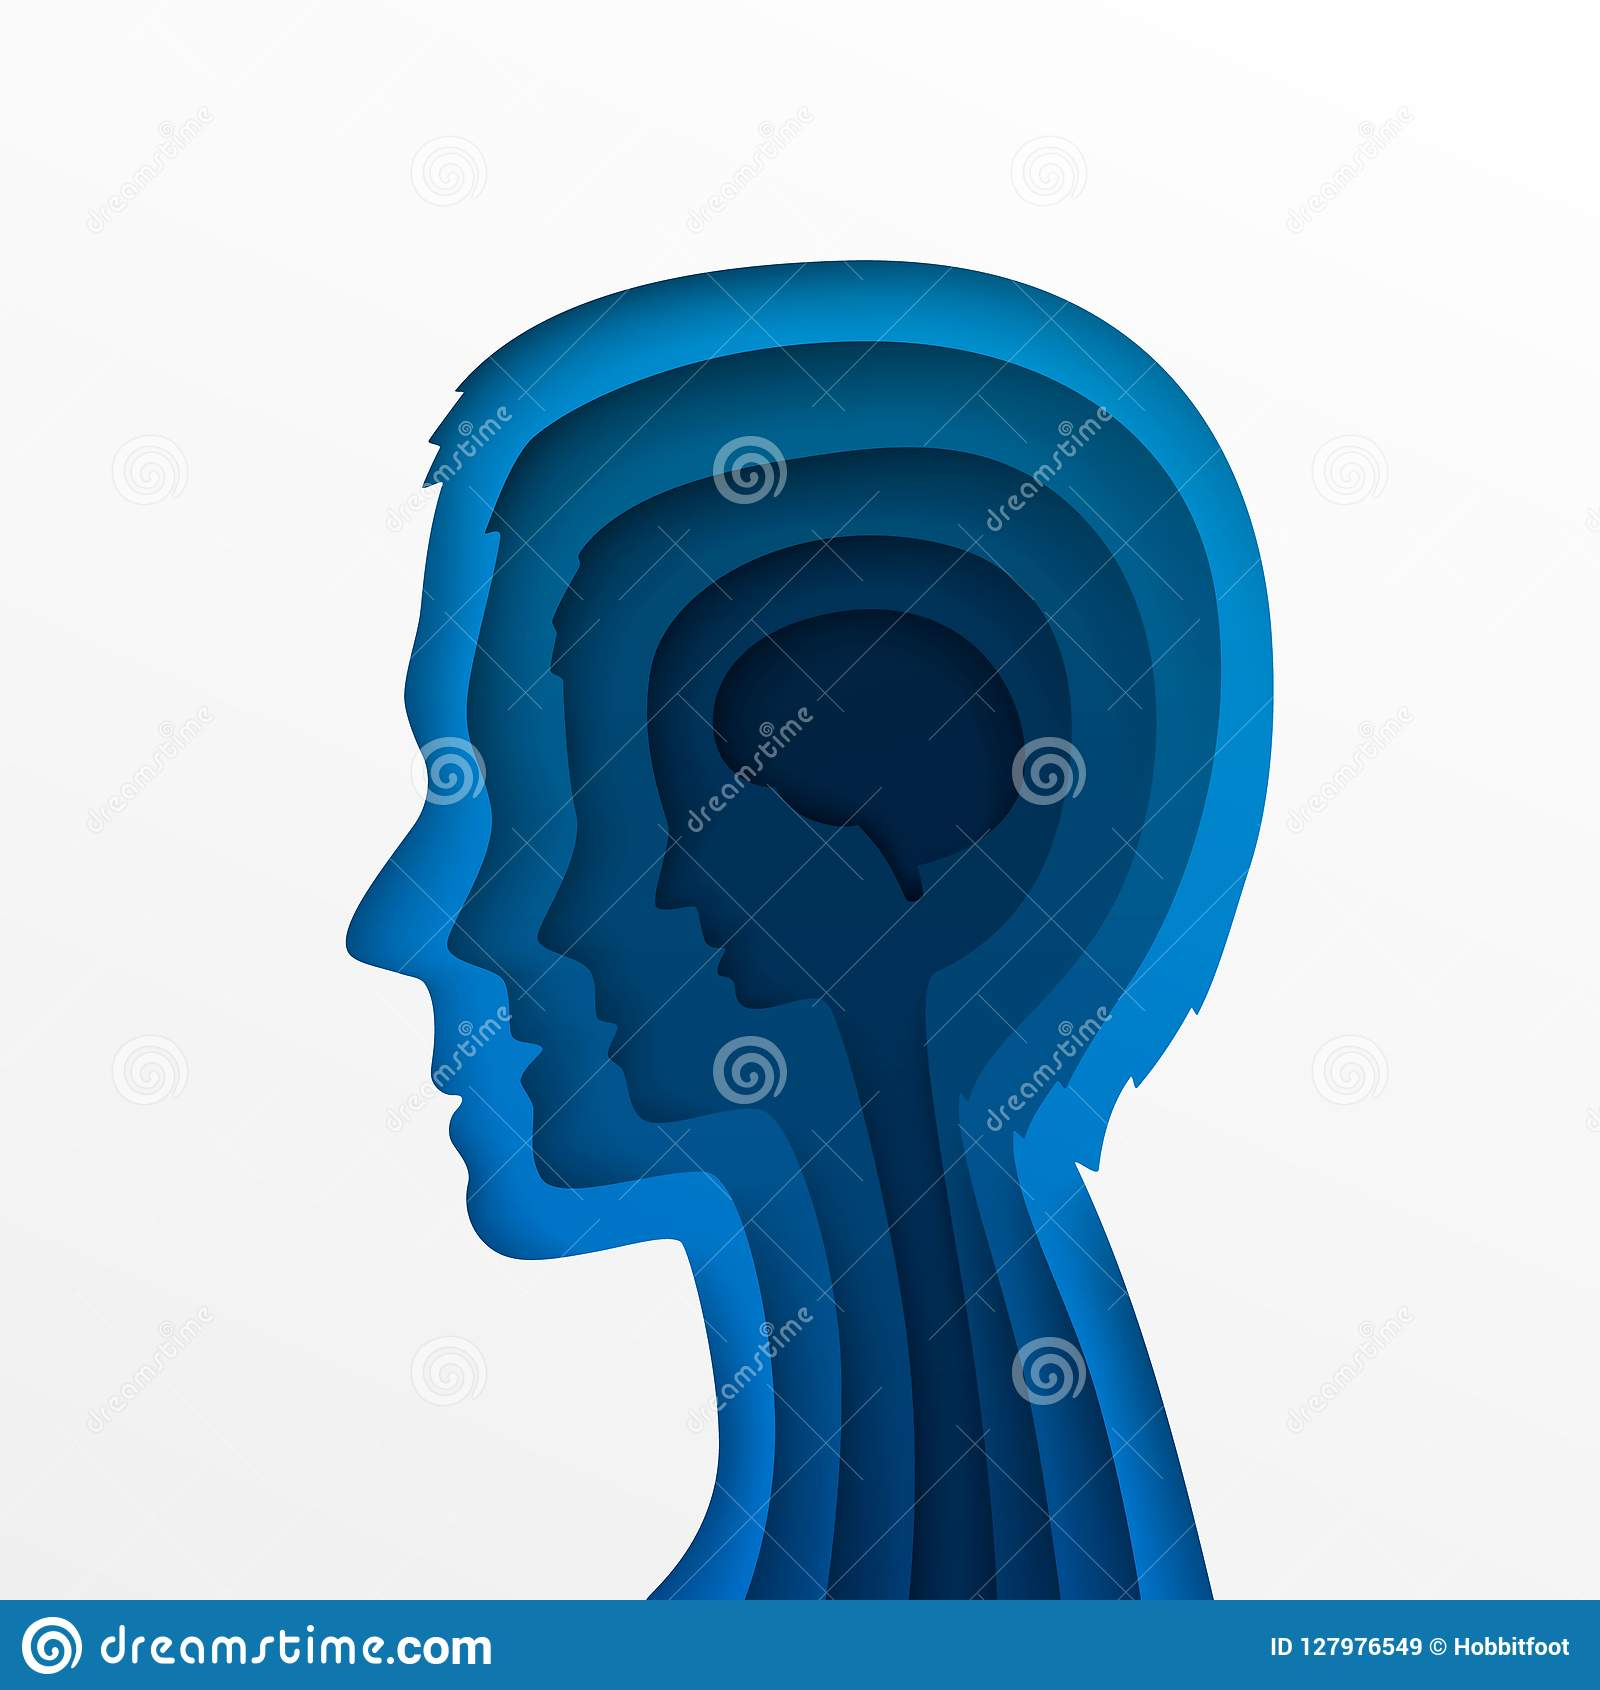 The Head Of A Man And Layers Stock Vector - Illustration of